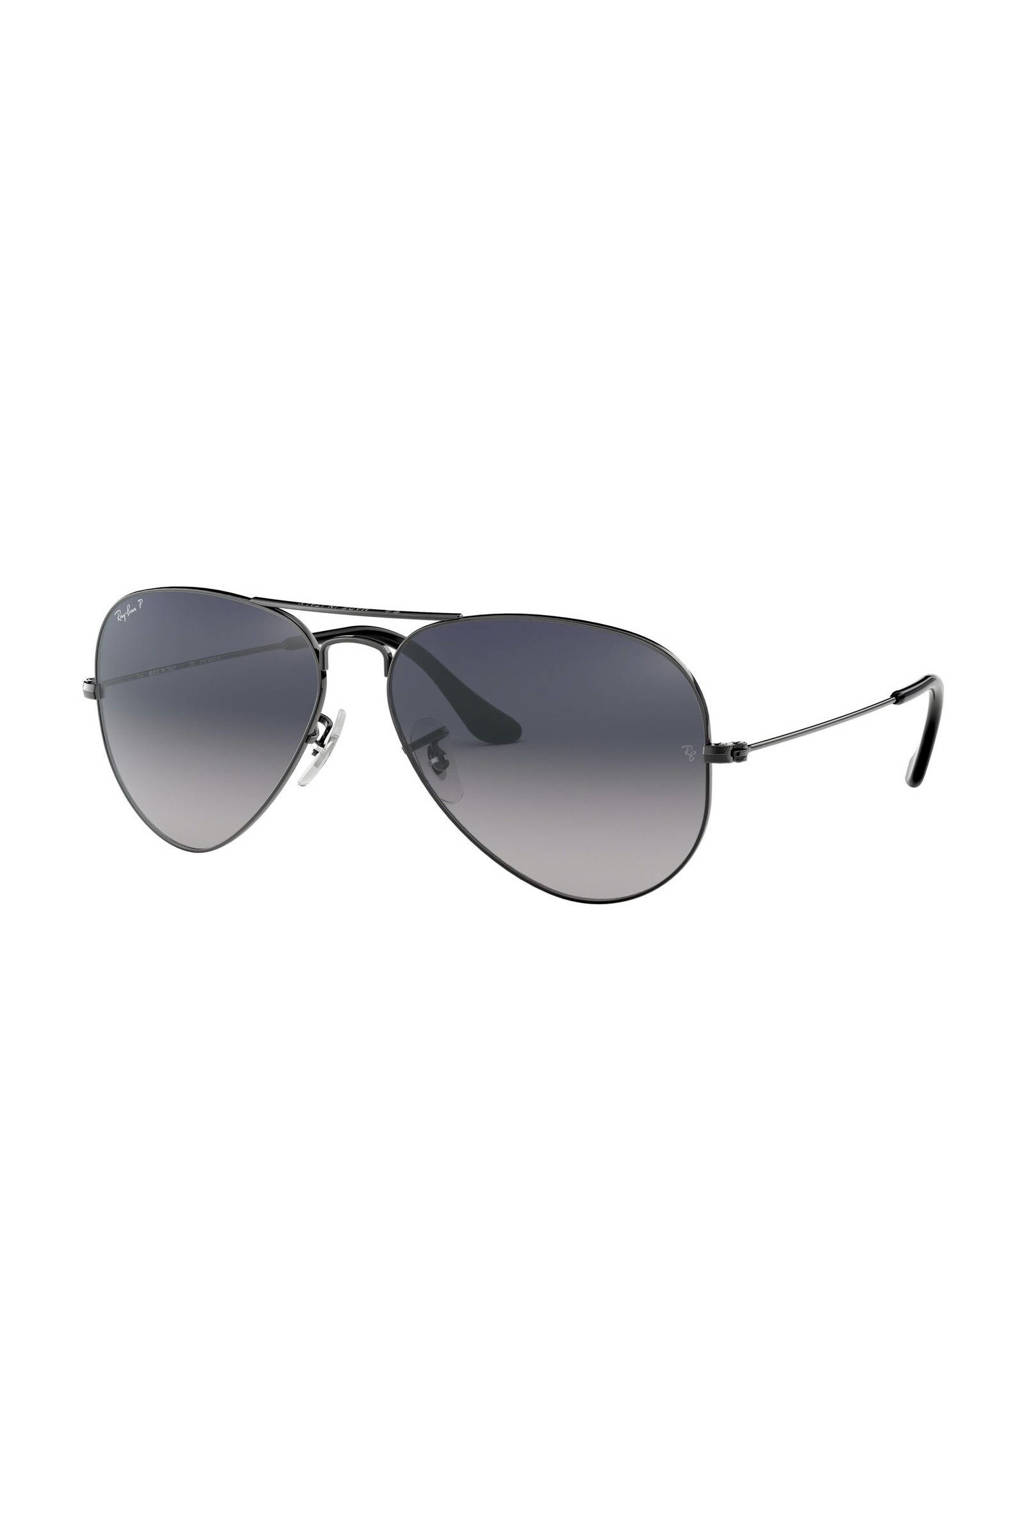 Ray-Ban zonnebril 0RB3025, Blauw/grijs